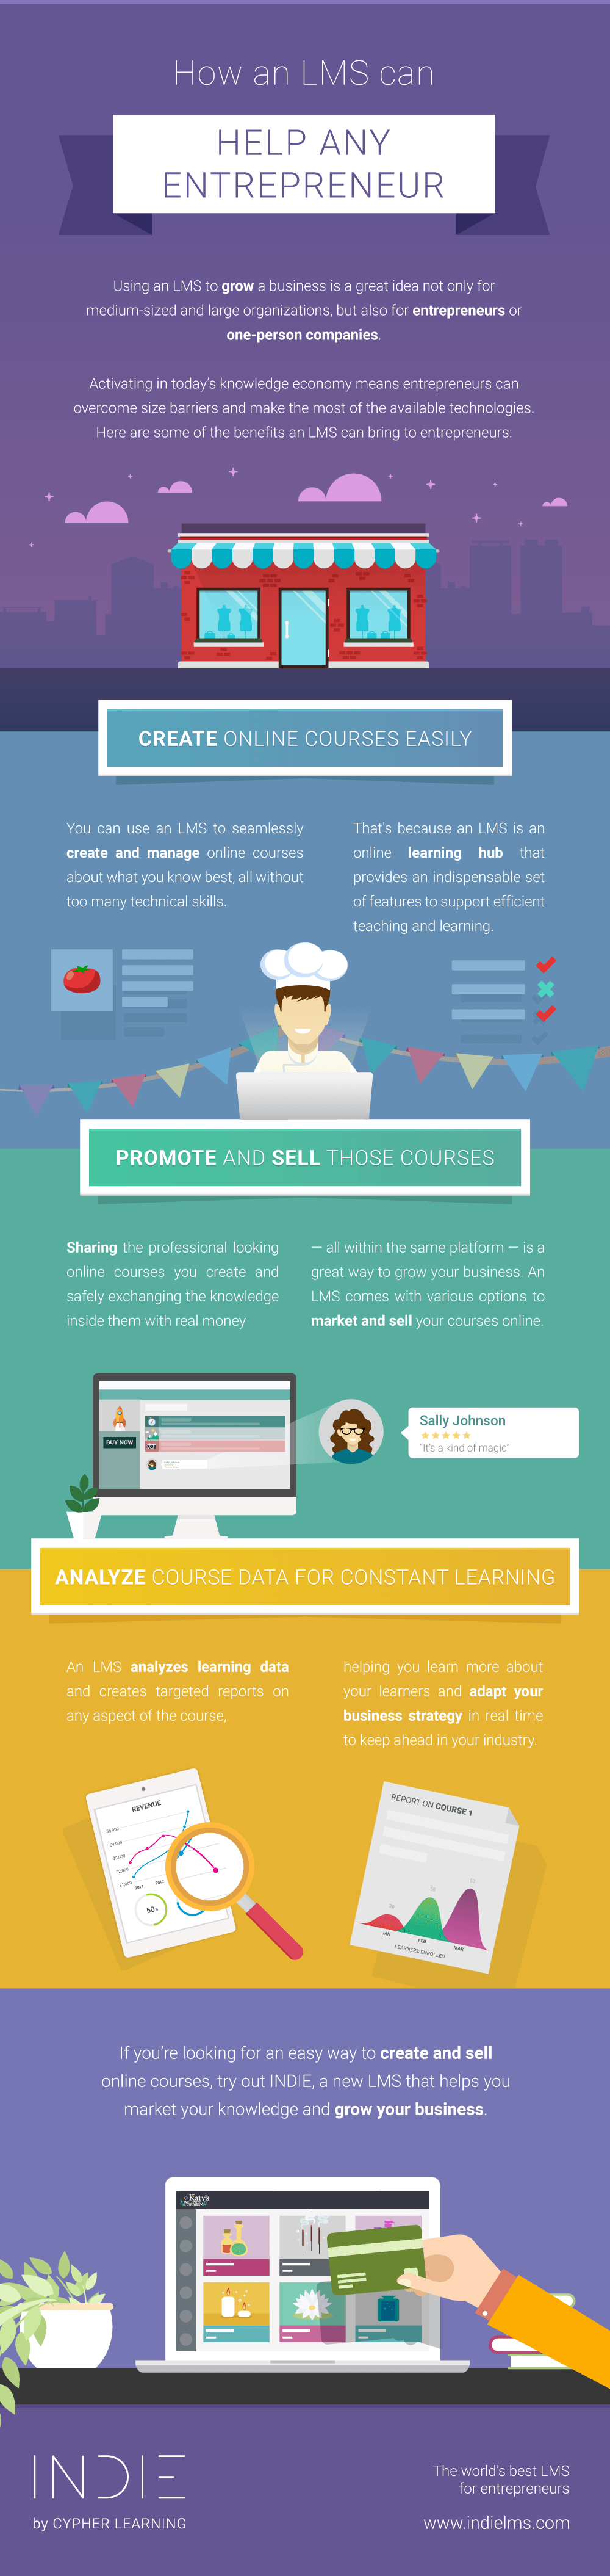 How An LMS Can Help Independent Entrepreneurs Infographic